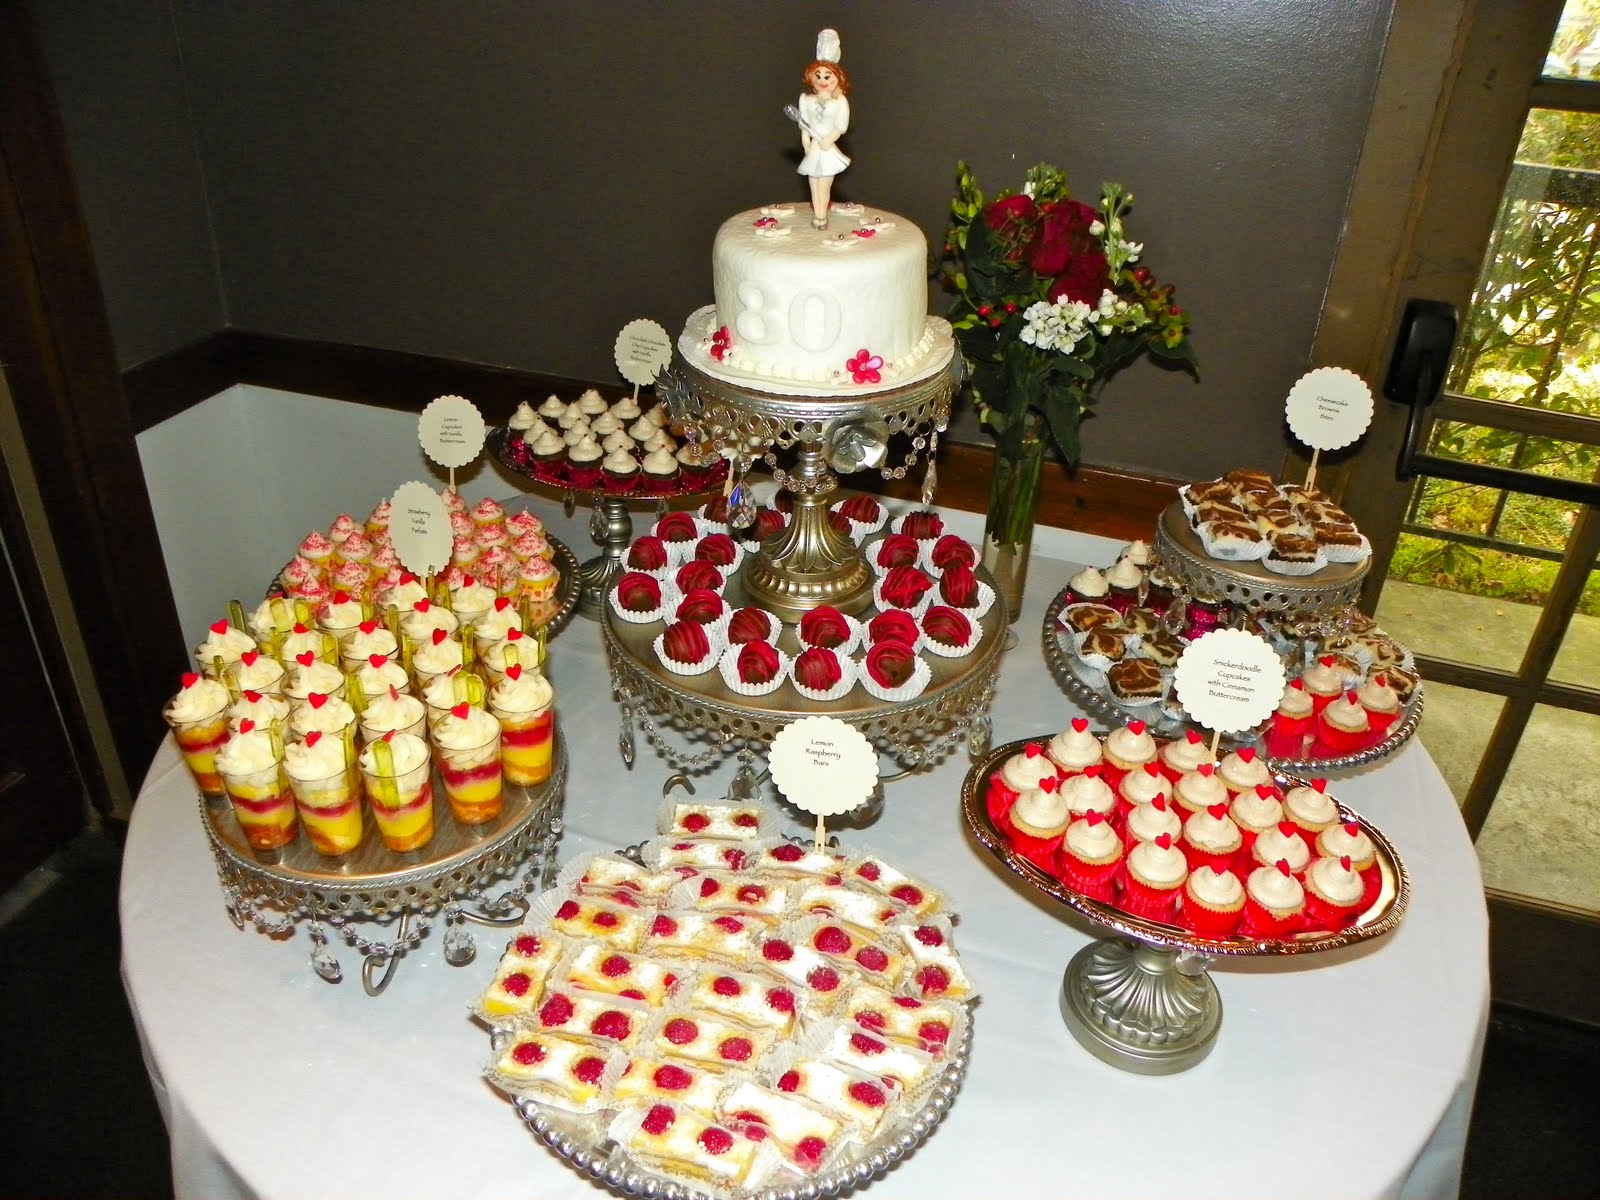 Plumeria cake studio 80th birthday dessert buffet for 80th birthday decoration ideas